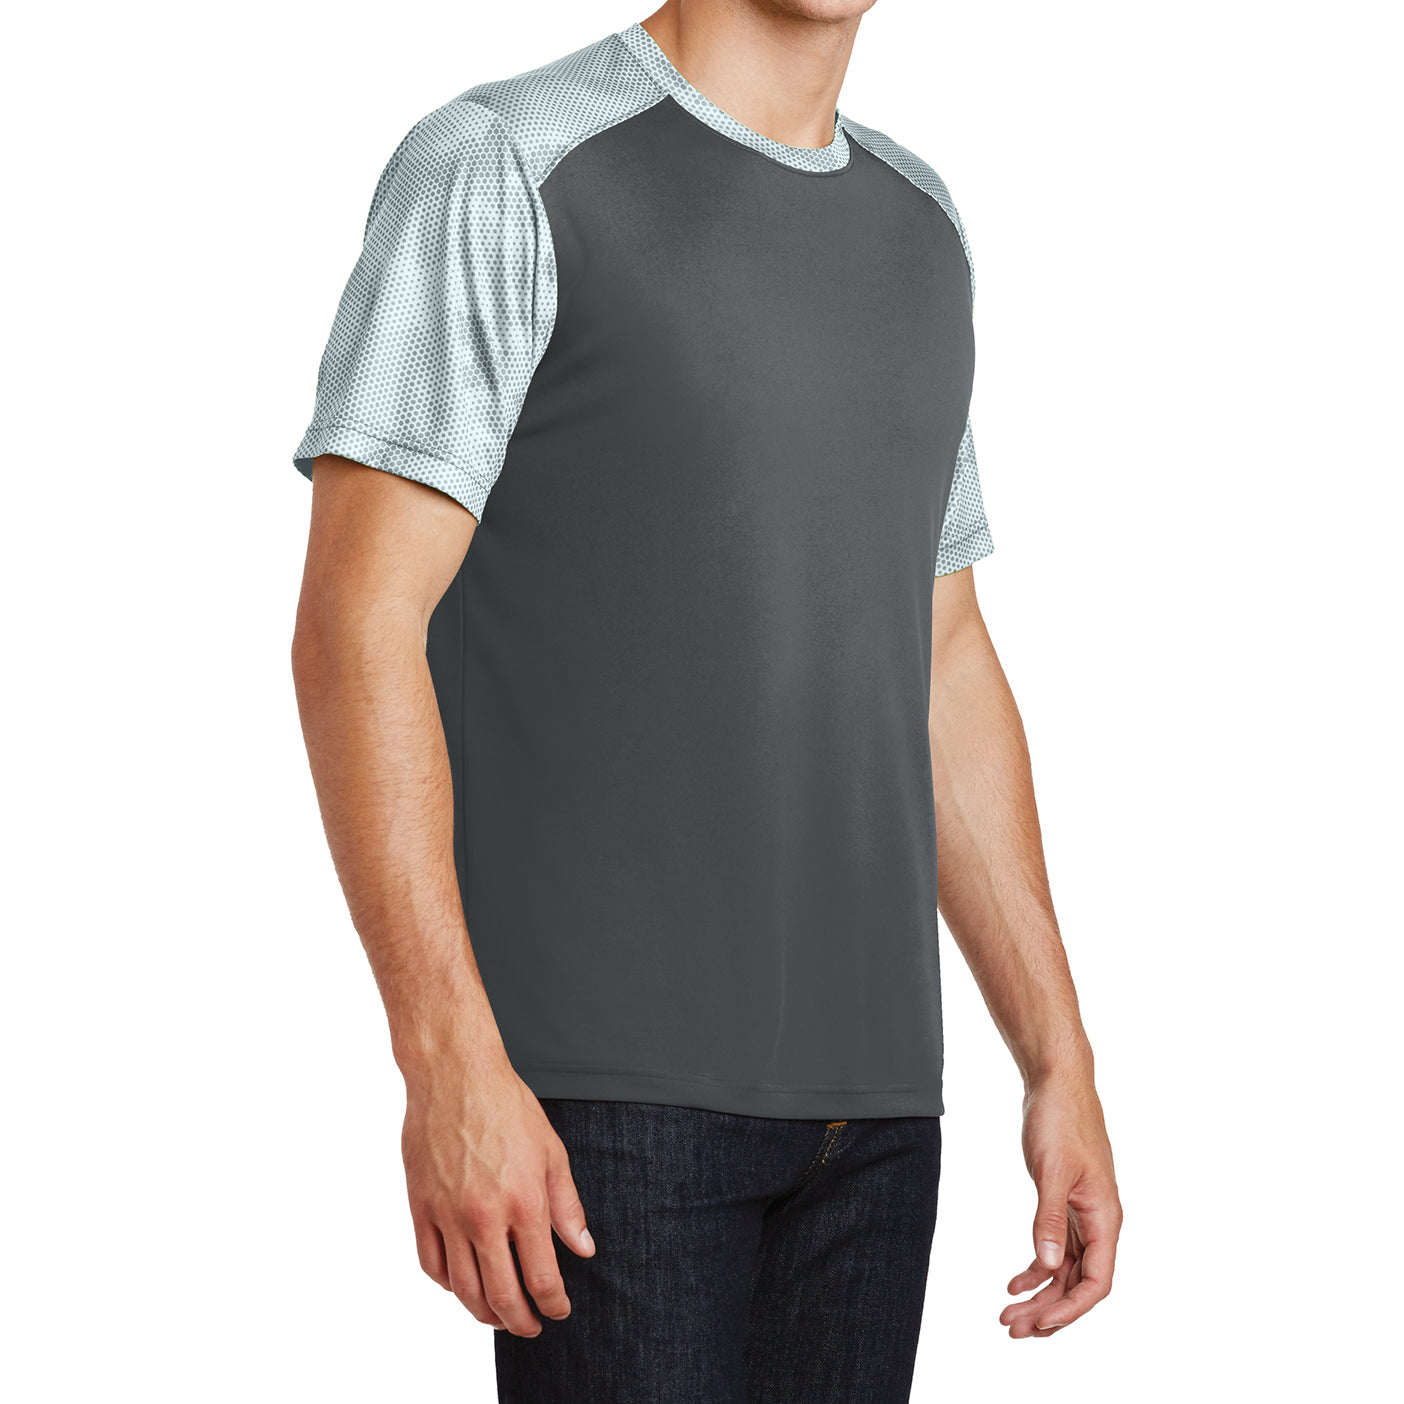 Men's CamoHex Colorblock Tee Shirt Iron Grey/ White Side